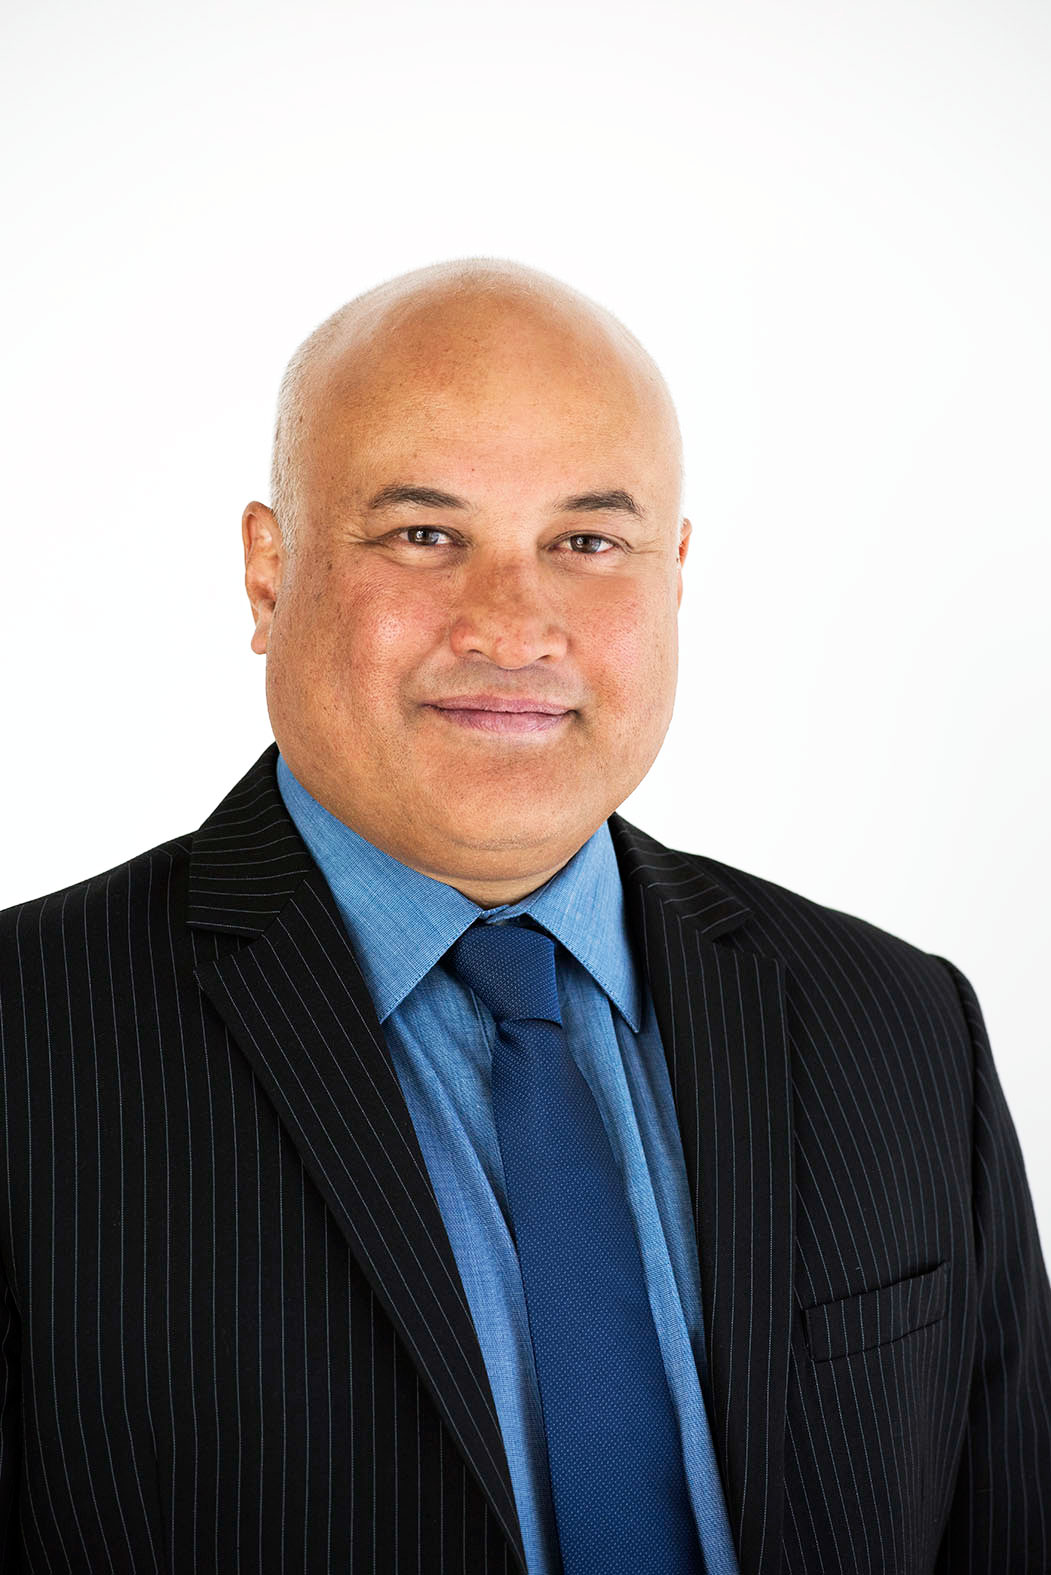 Franklin Law litigator, Eddie Taia